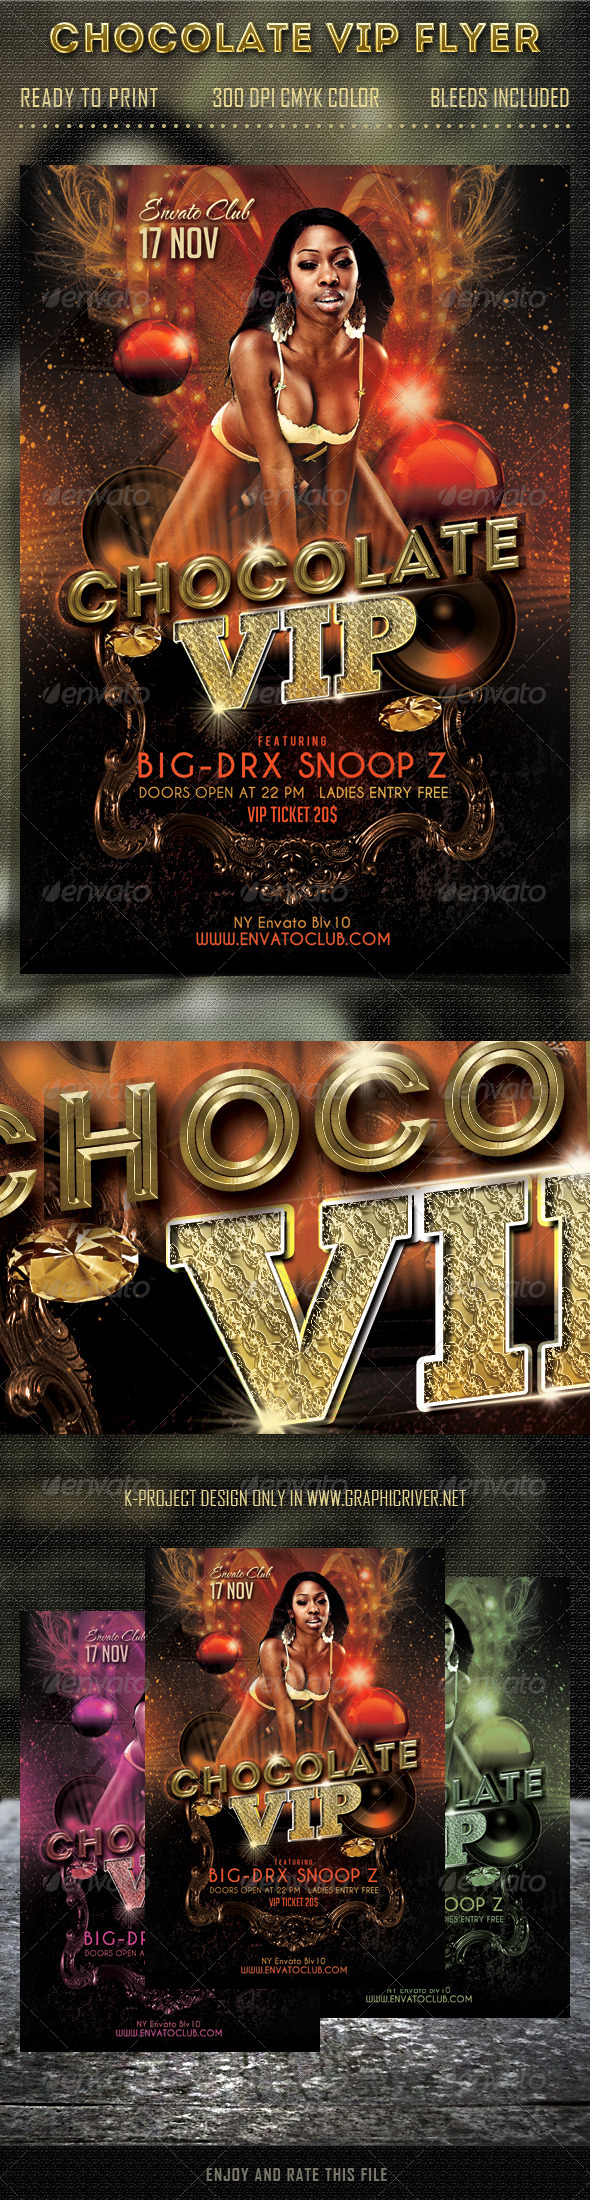 Chocolate VIP Party Flyer - Clubs & Parties Events